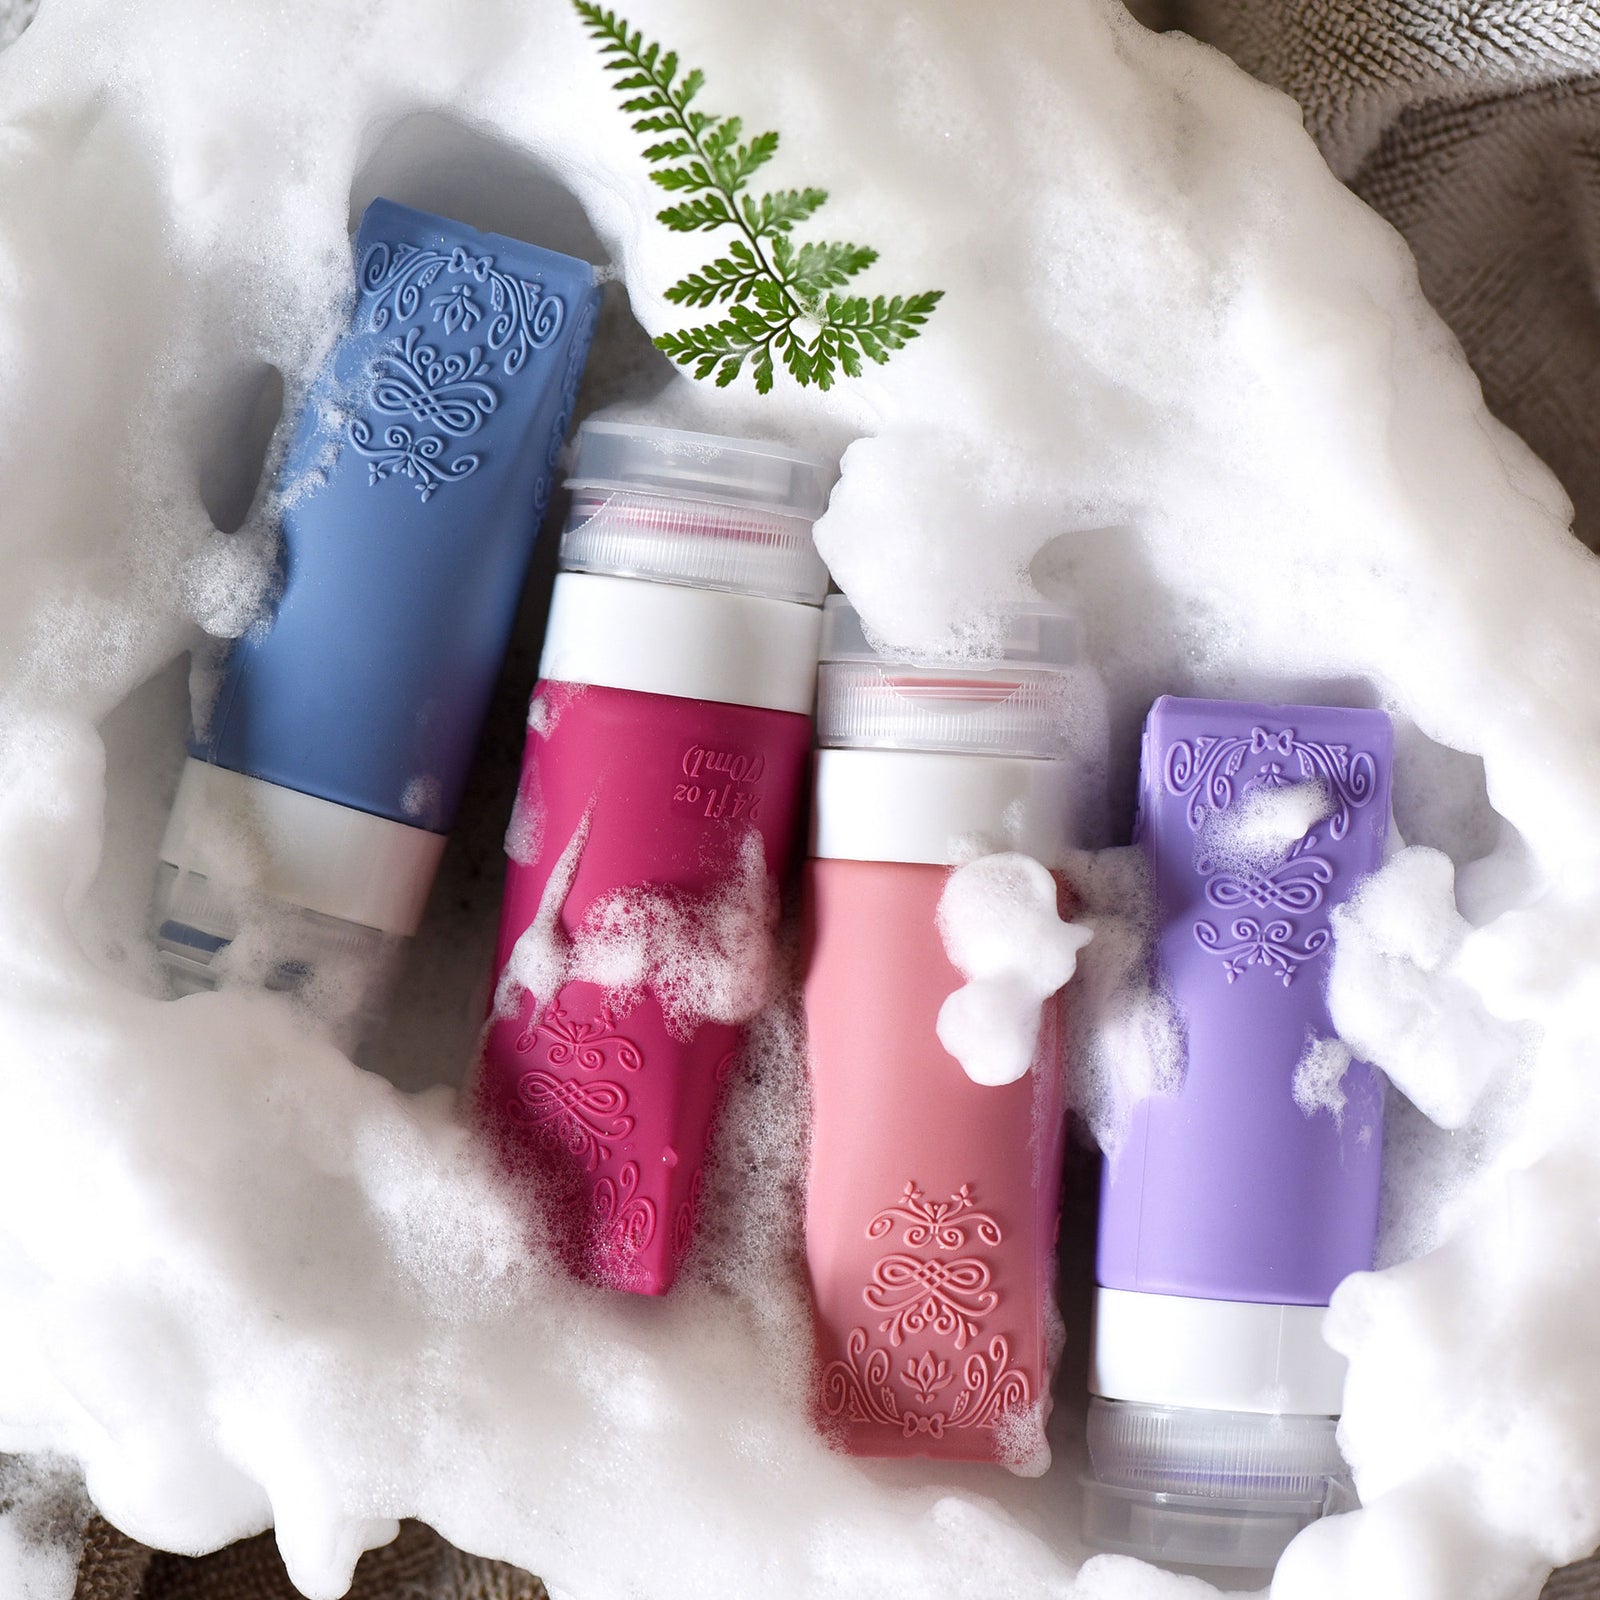 FiveSeasonStuff TSA Approved Silicone Leak Proof Travel Squeeze Bottles and Travel Spray Bottle with TSA Toiletry Bag (7 Pack) Mystical (Aqua Blue, Bright Lavender, Cerise Pink & Wild Pink) Vintage Series